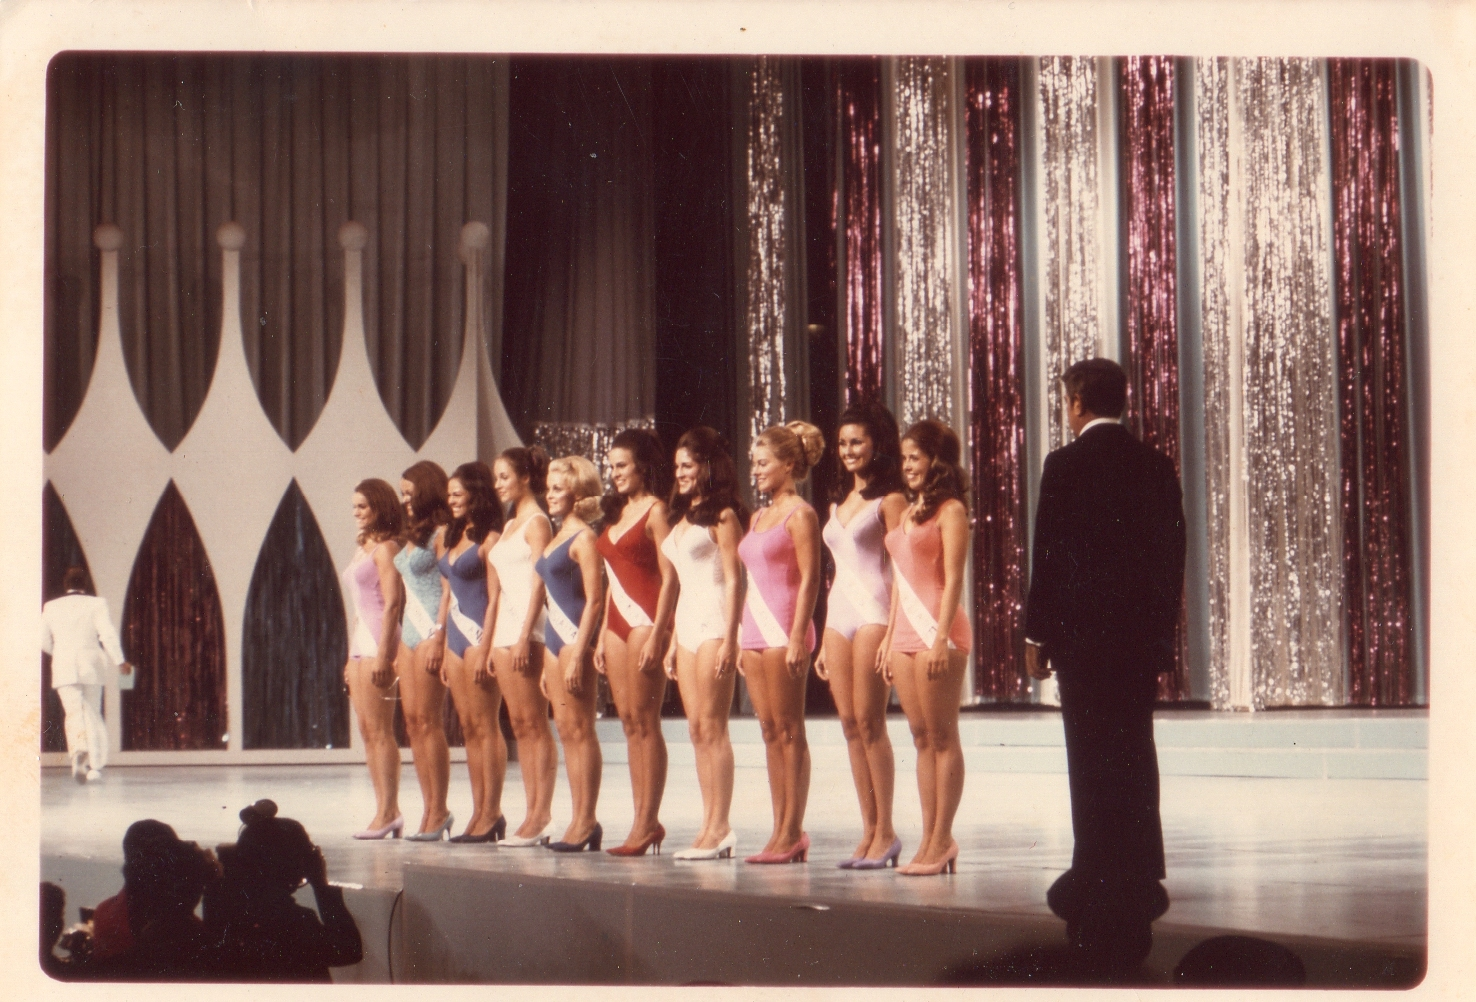 Burt Parks last year as Emcee at the Miss America Pageant